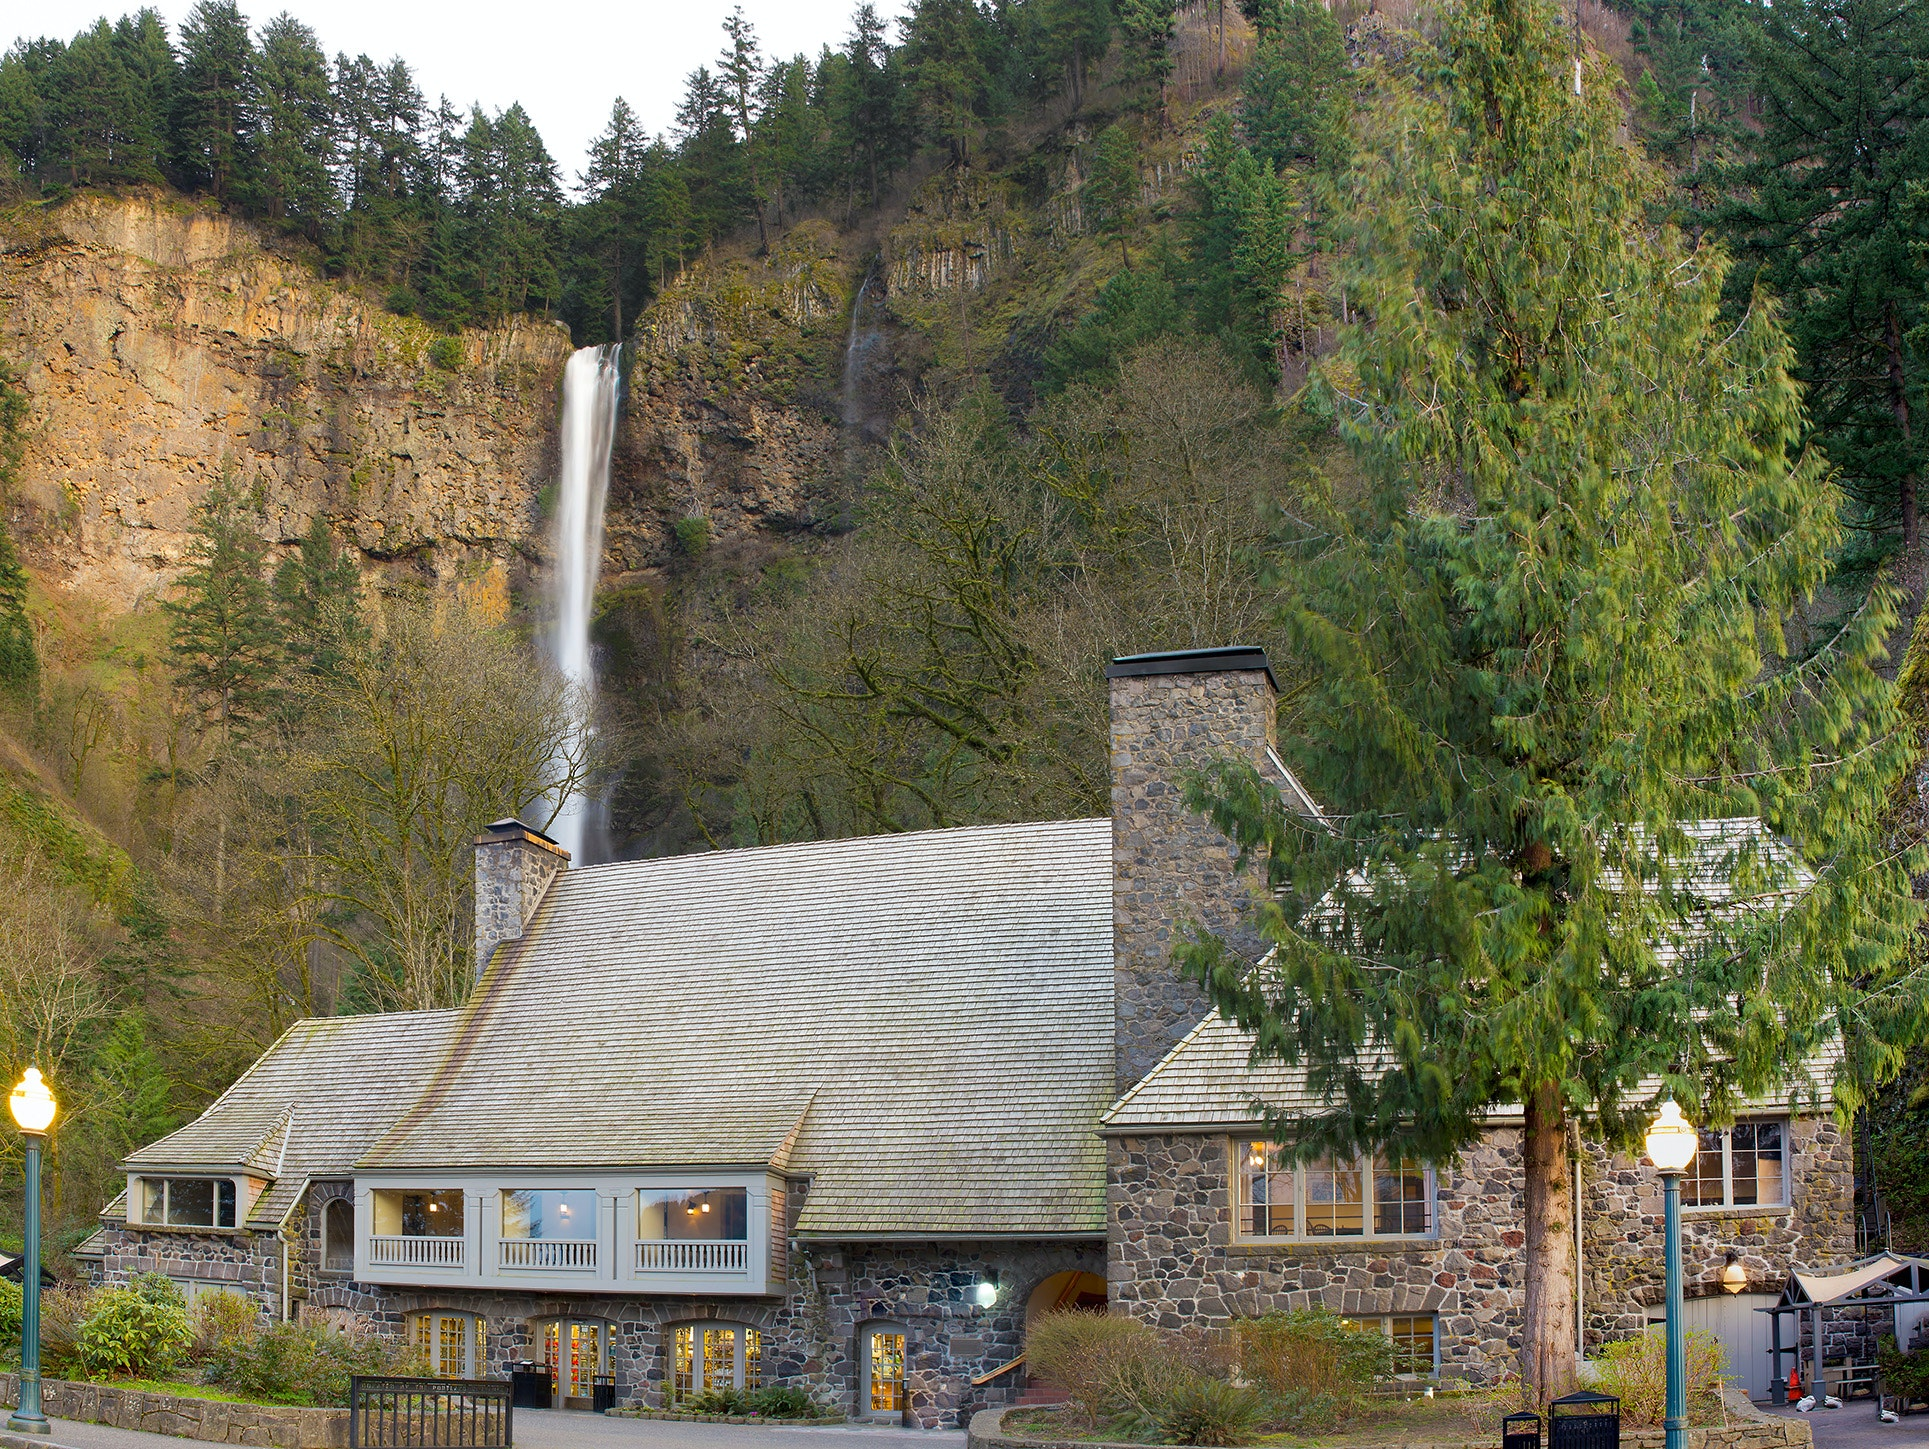 The Multnomah Falls Lodge reopened in November with a new shuttle service from Portland.